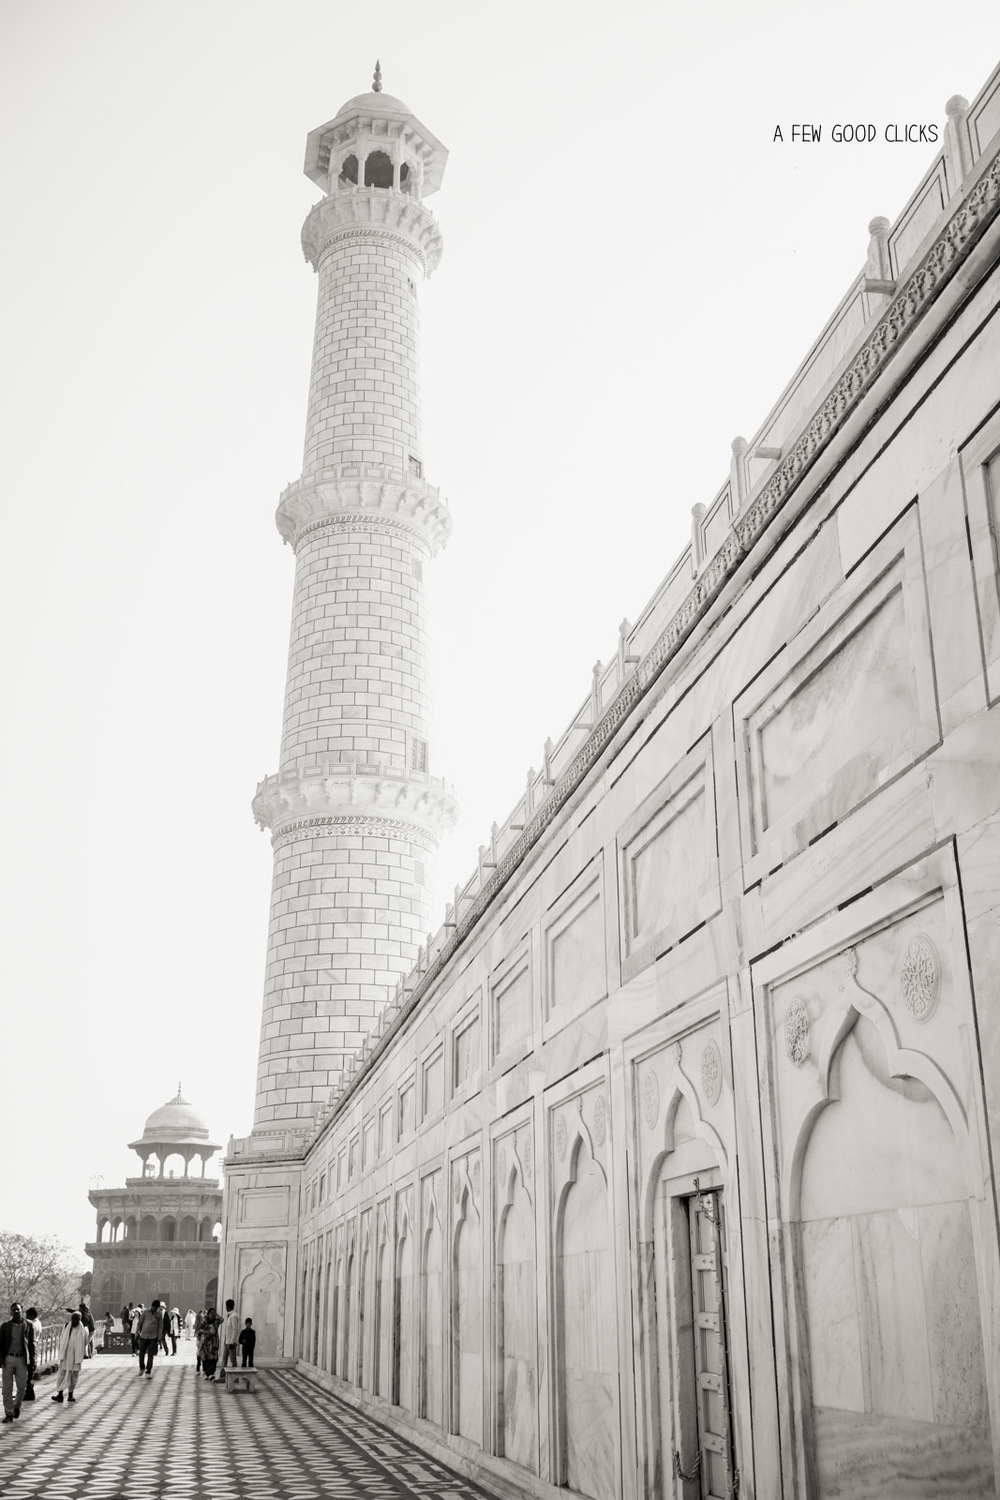 pillar-tajmahal-photography-by-travel-photographer-a-few-good-clicks-net